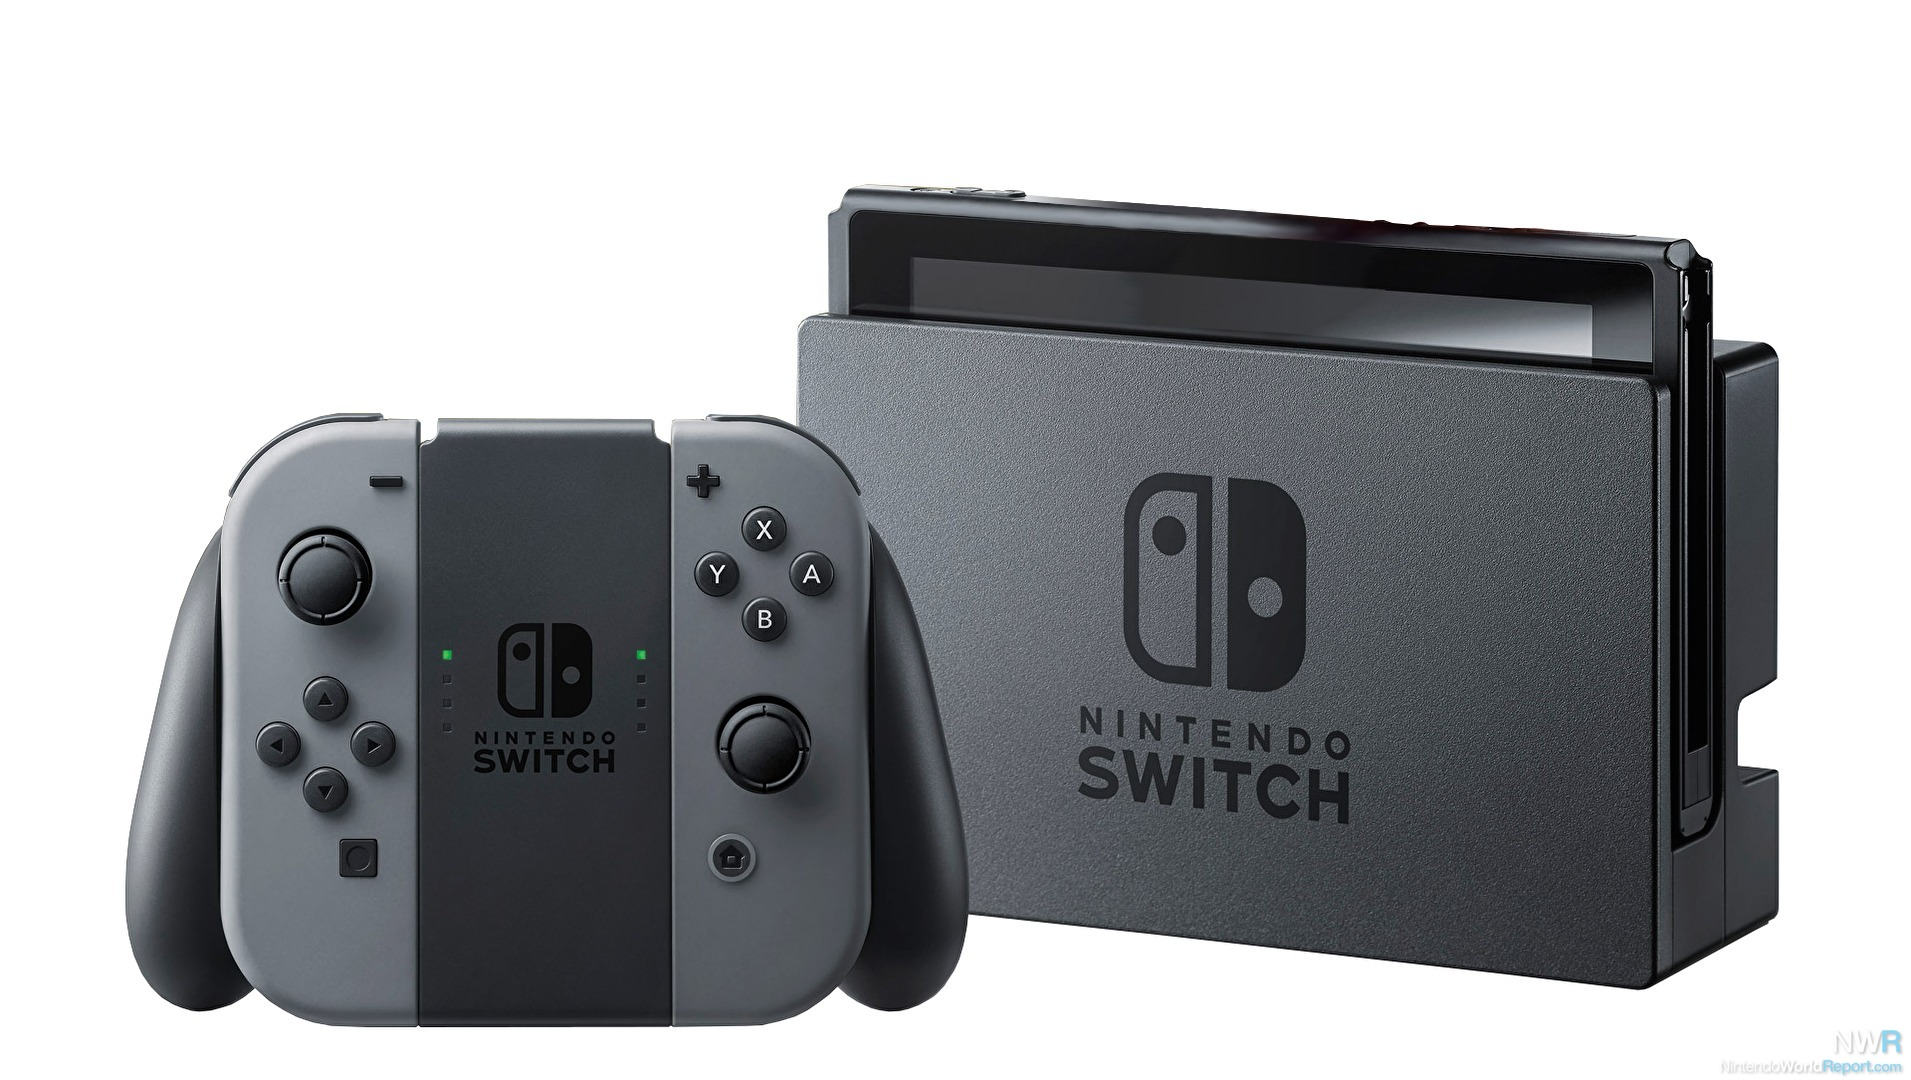 In just under two years the Nintendo Switch has outsold the GameCube